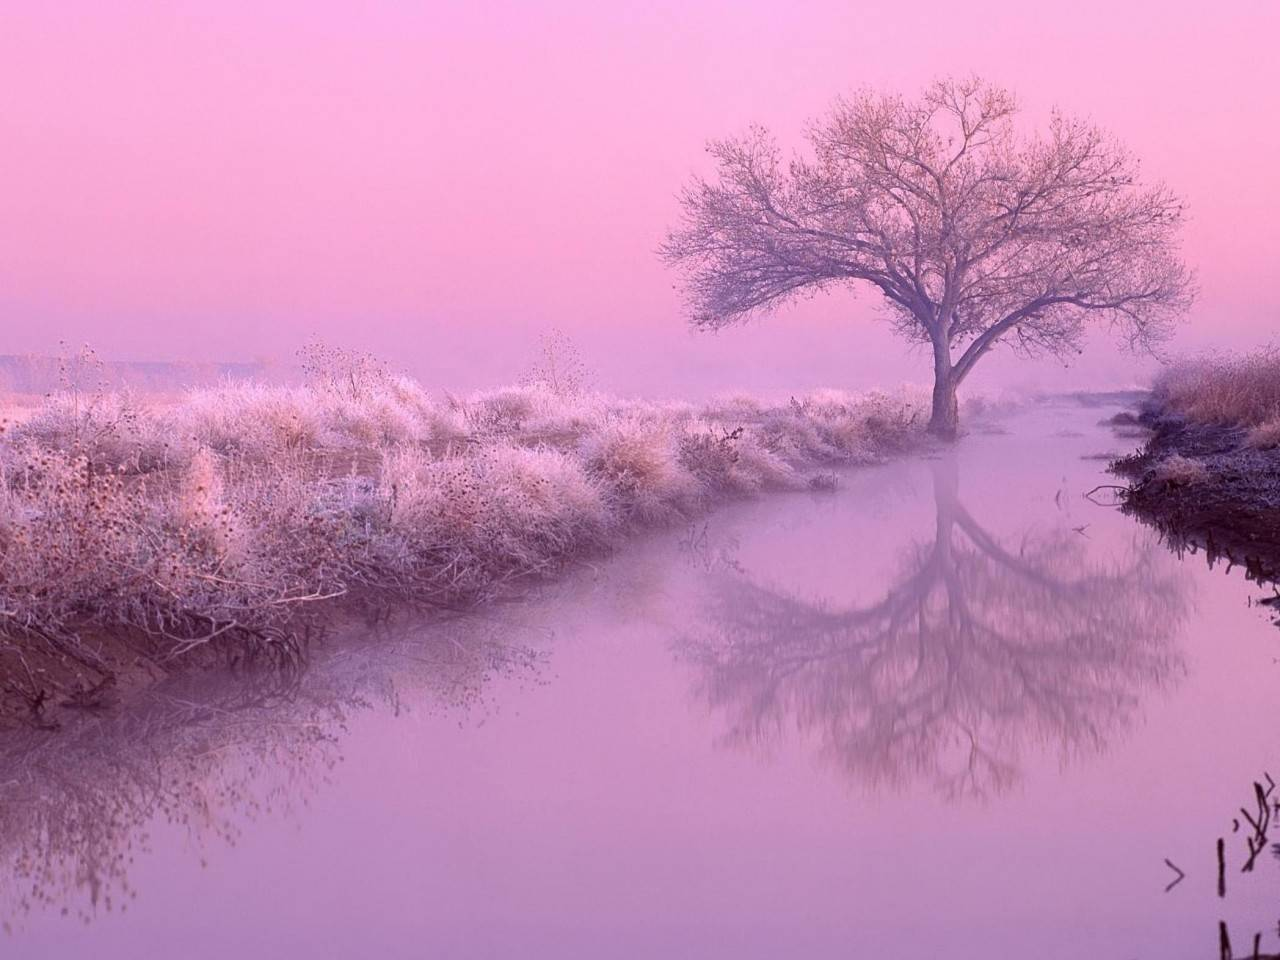 Pink nature   Nature Wallpaper 1280x960